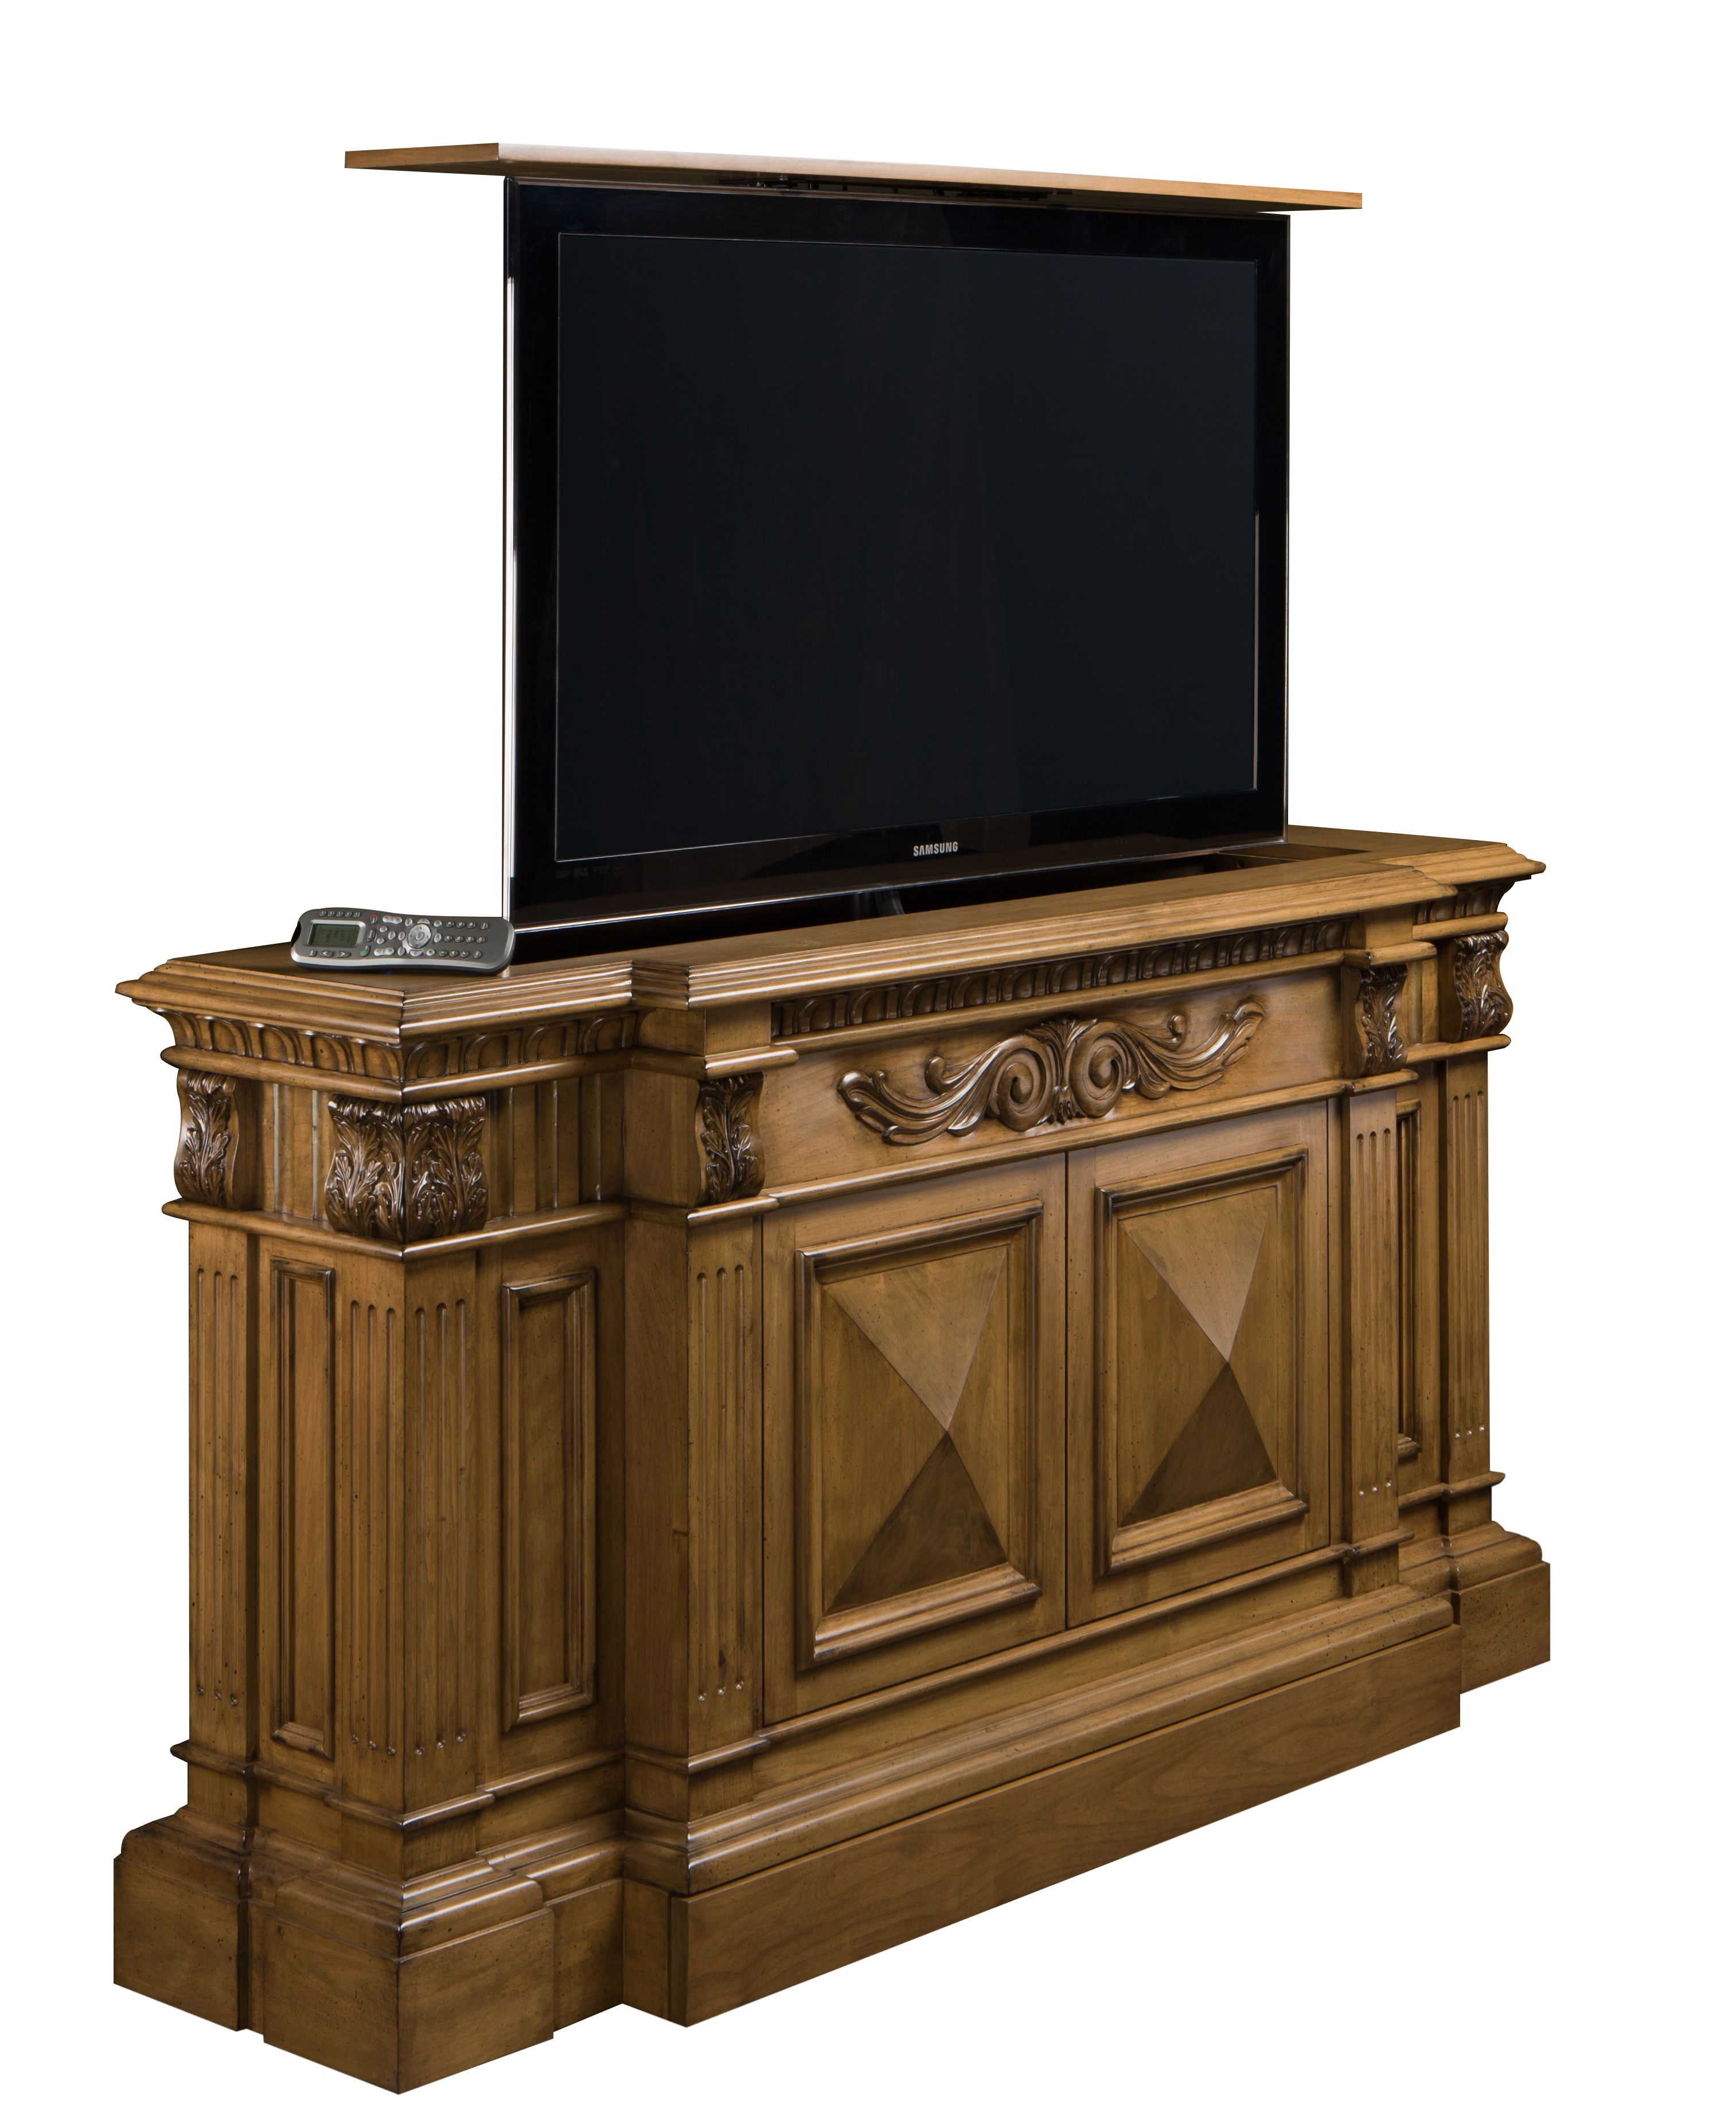 Belvedere hand carved TV Lift is Made in US. This